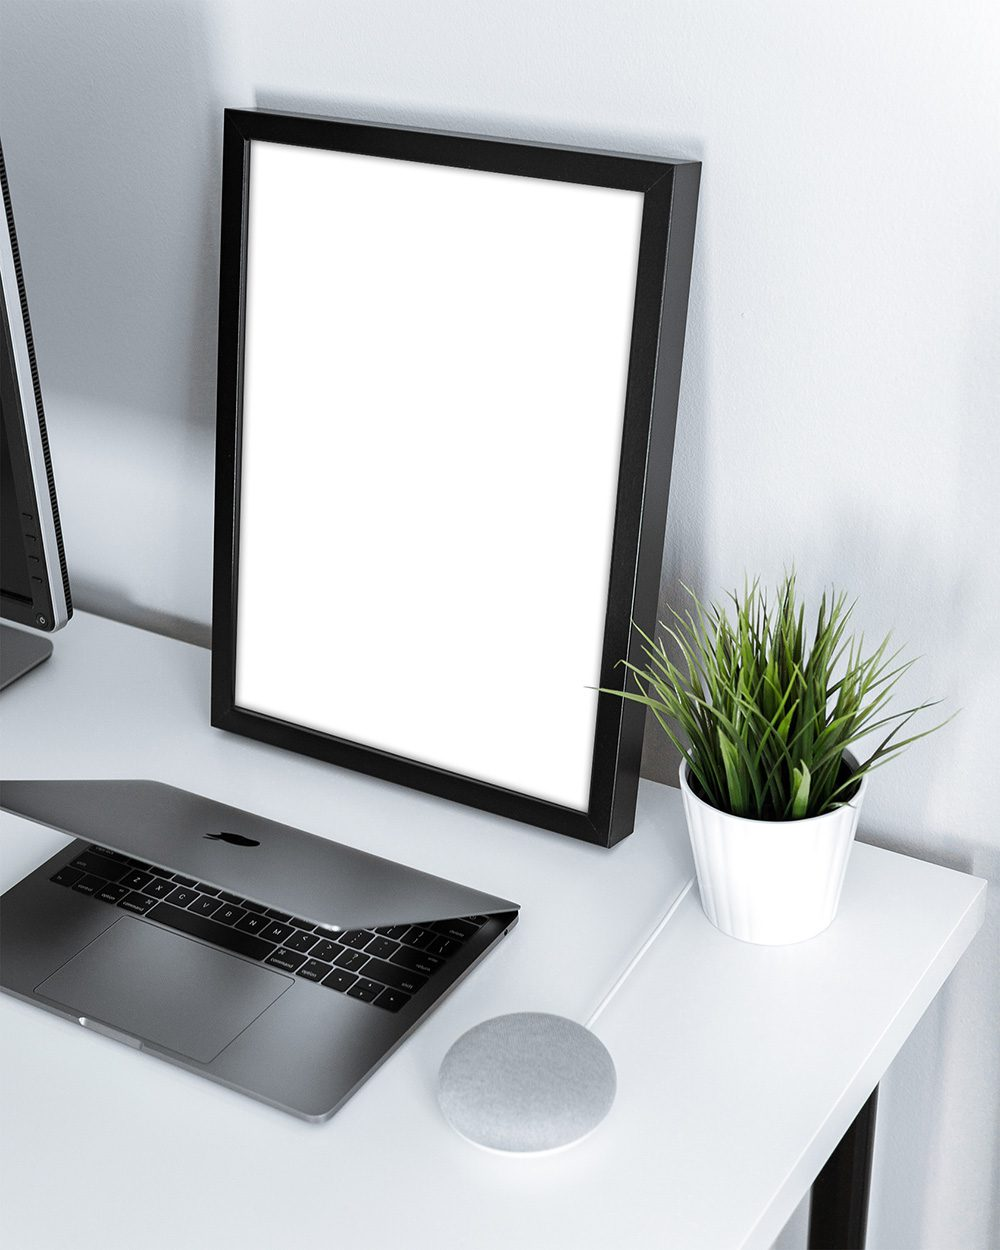 23-black-photo-frame-mockup-generator